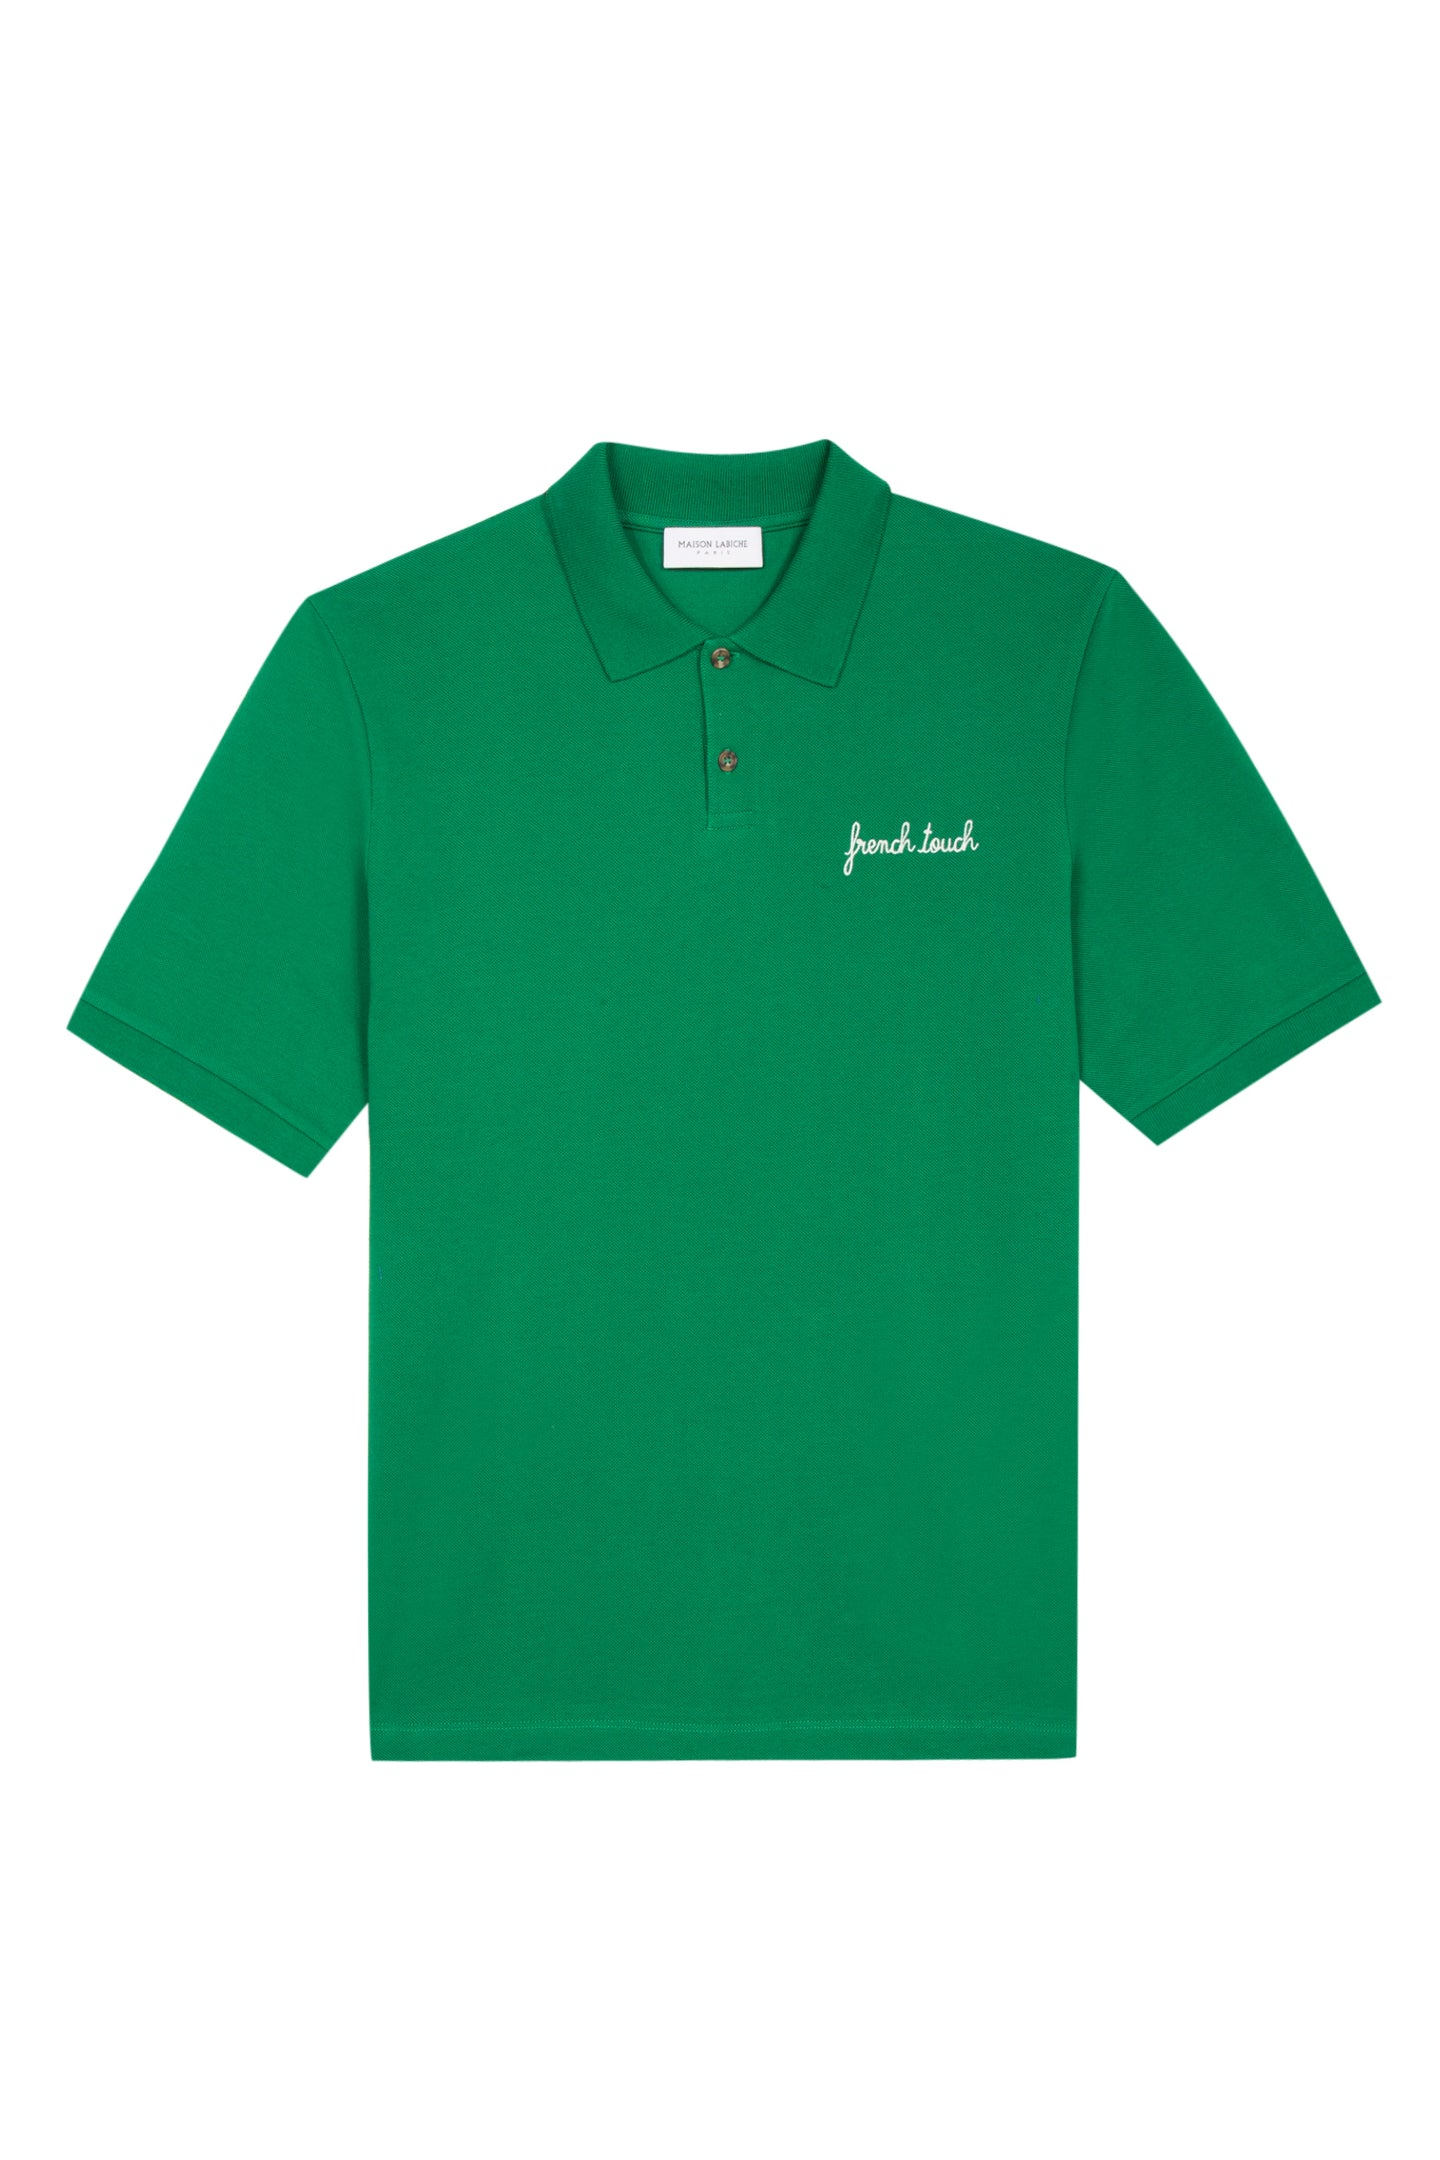 Maison Labiche Polo Tennis French touch Vert